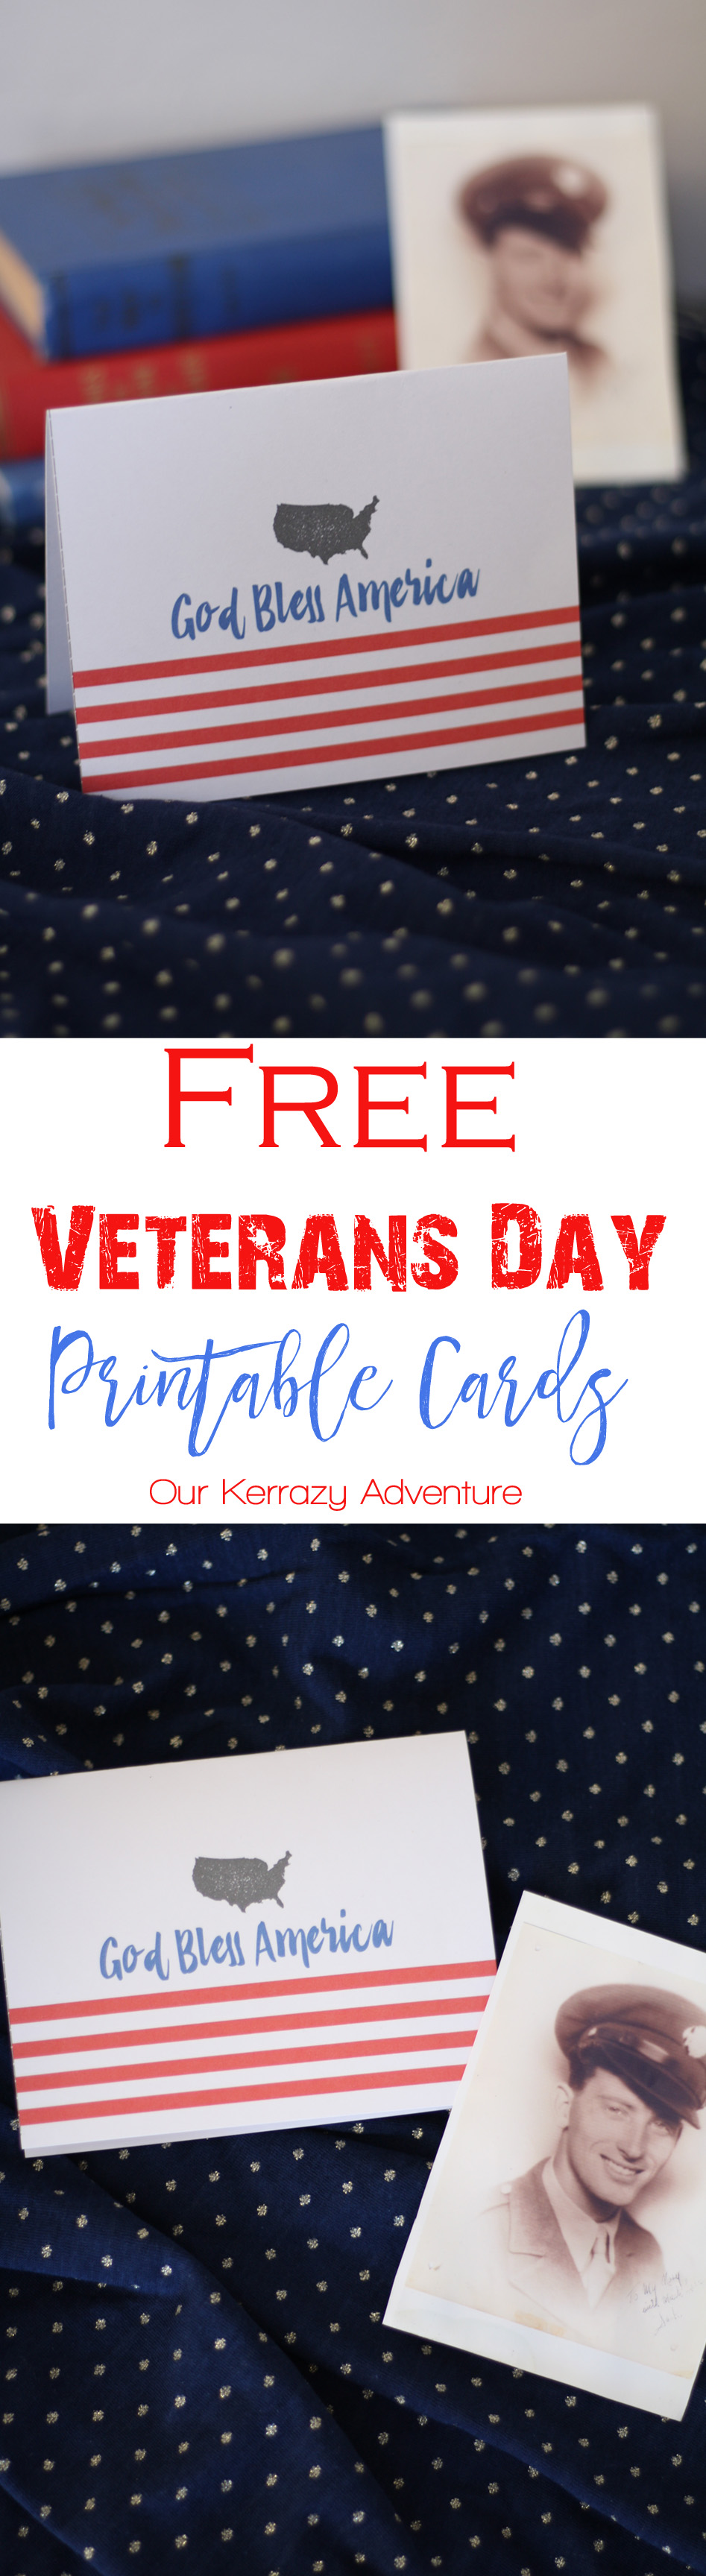 image about Free Printable Veterans Day Cards referred to as Free of charge Veterans Working day Card Printable - Our Kerrazy Experience